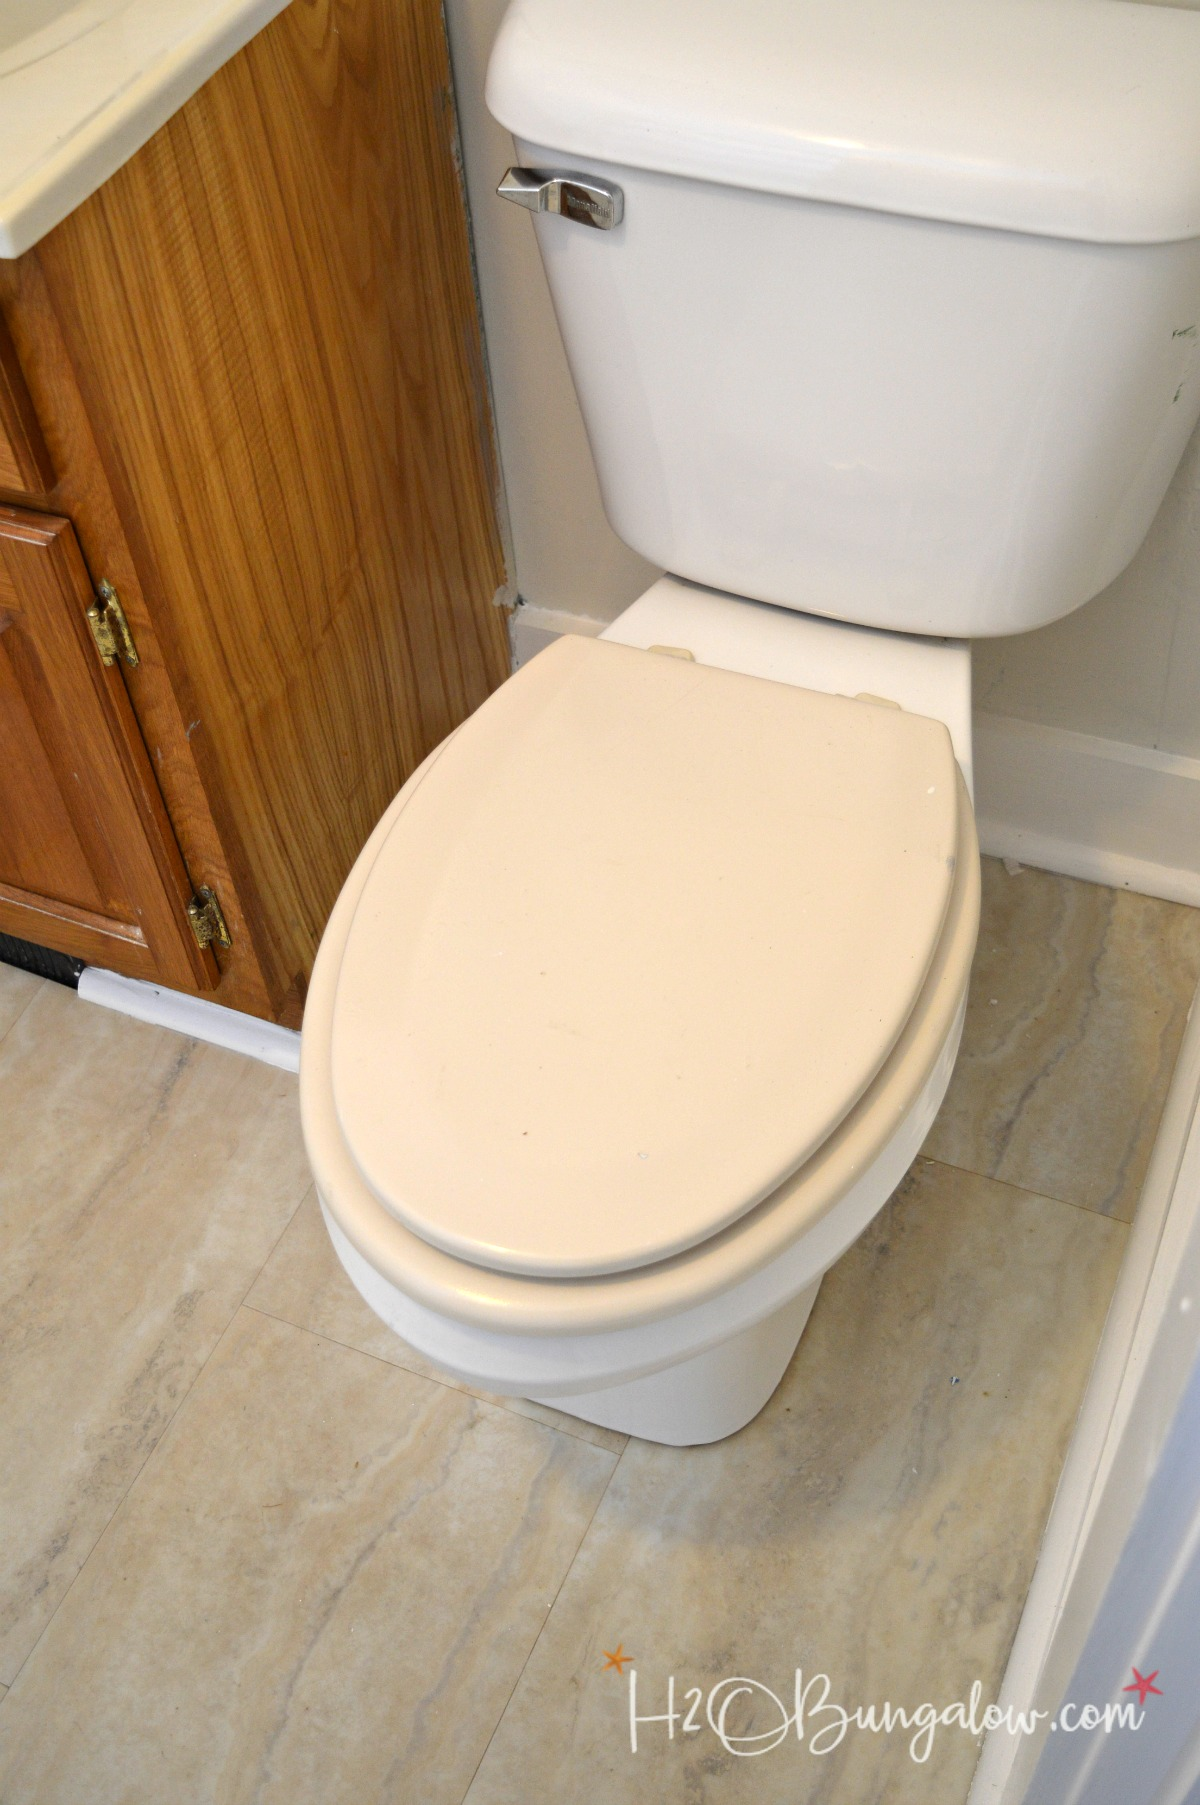 Install A Toilet How To Install A Slow Close Toilet Seat H2obungalow